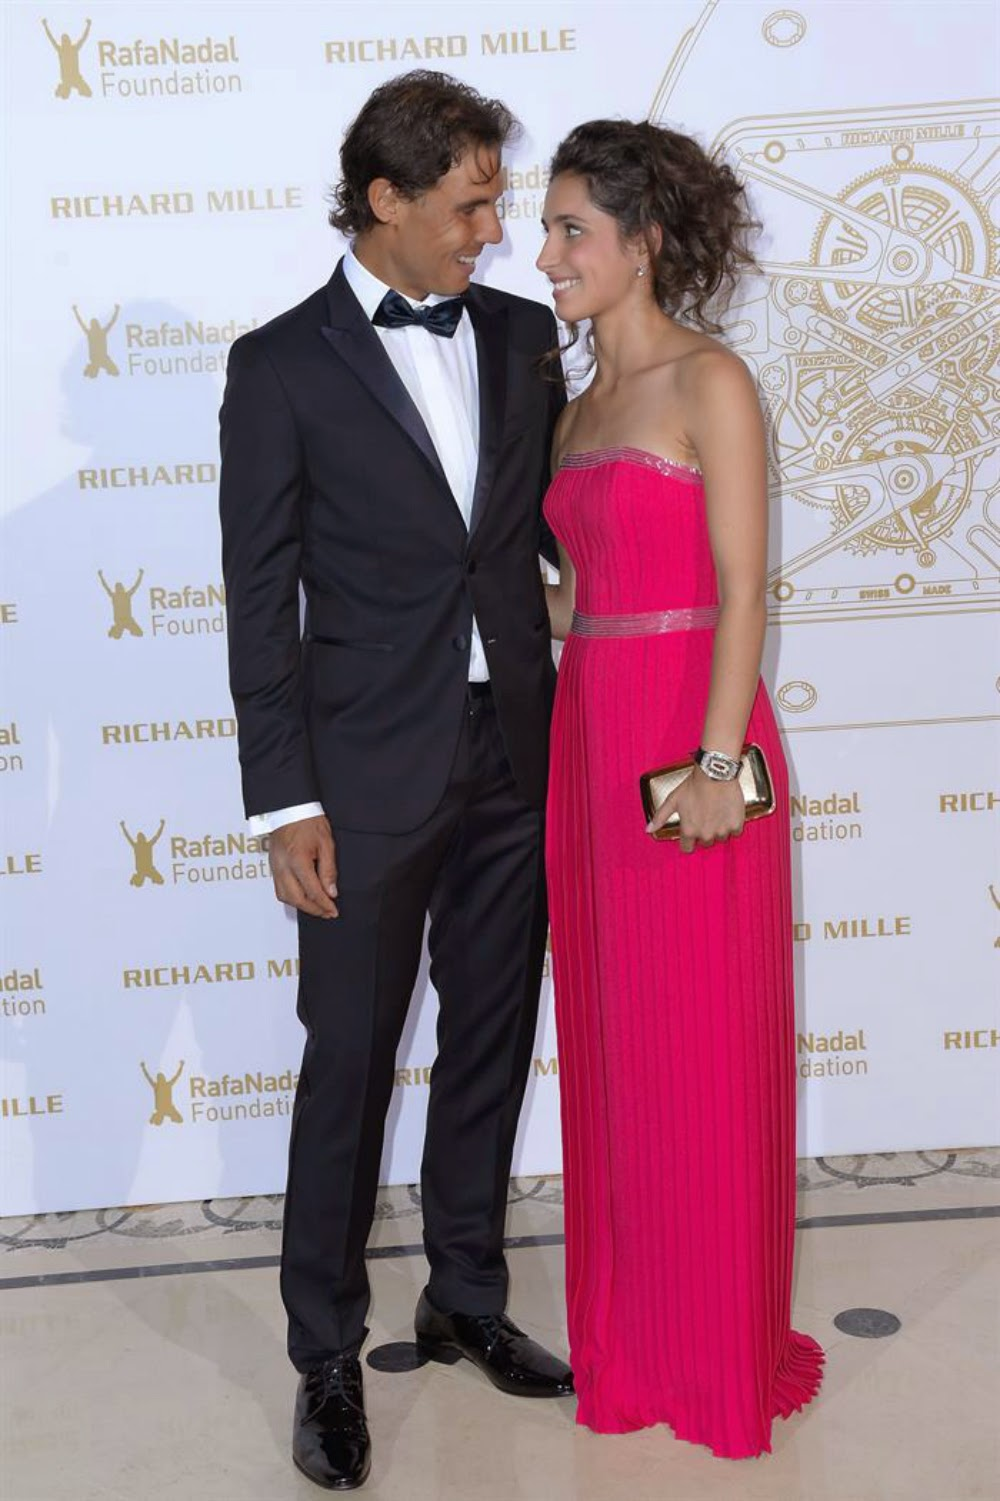 Xisca Perello engaged with Nadal